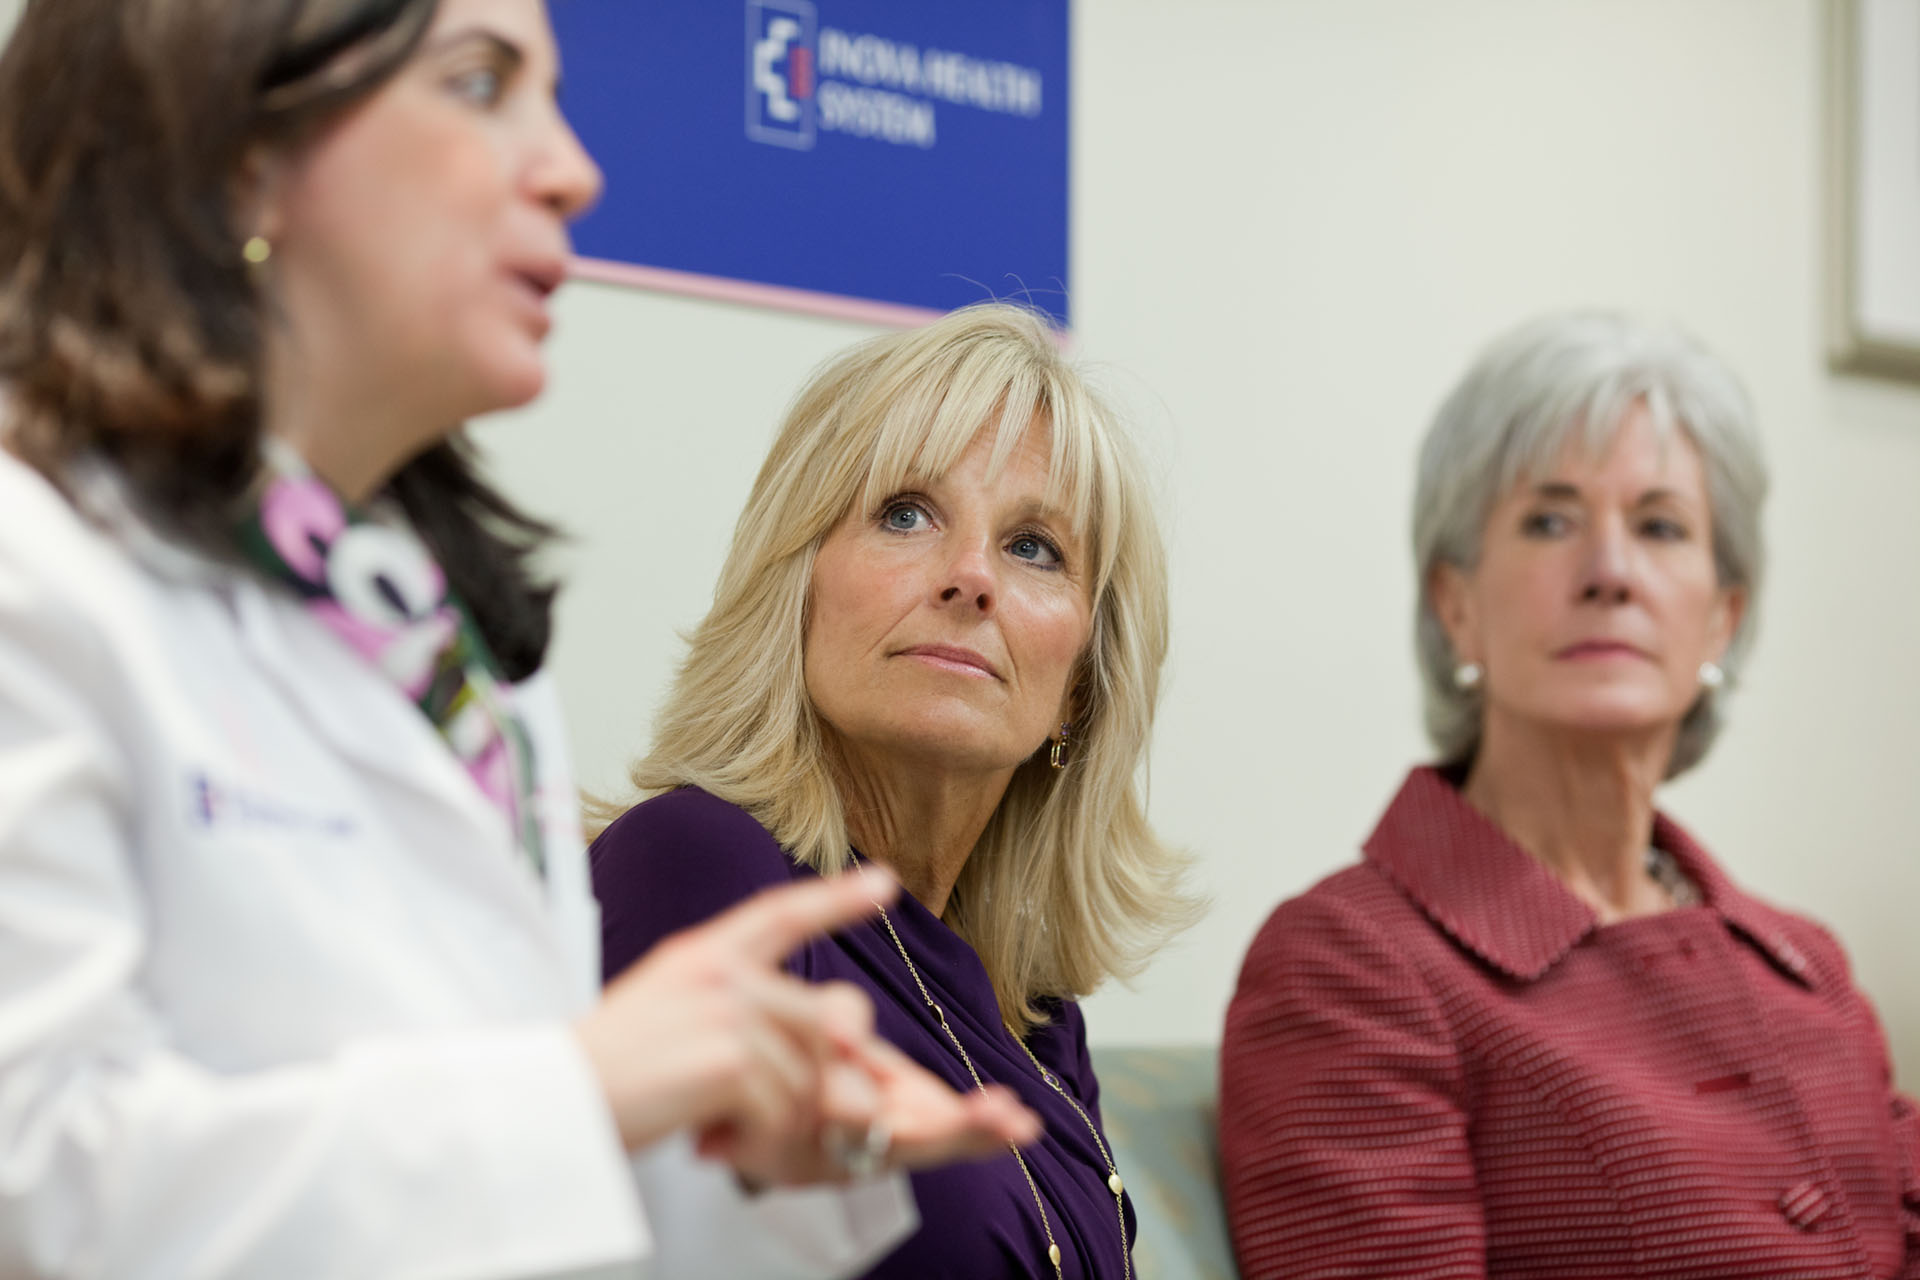 Dr. Jill Biden Secretary of Health and Human Services Kathleen Sebelius  at the Inova Breast Care Center